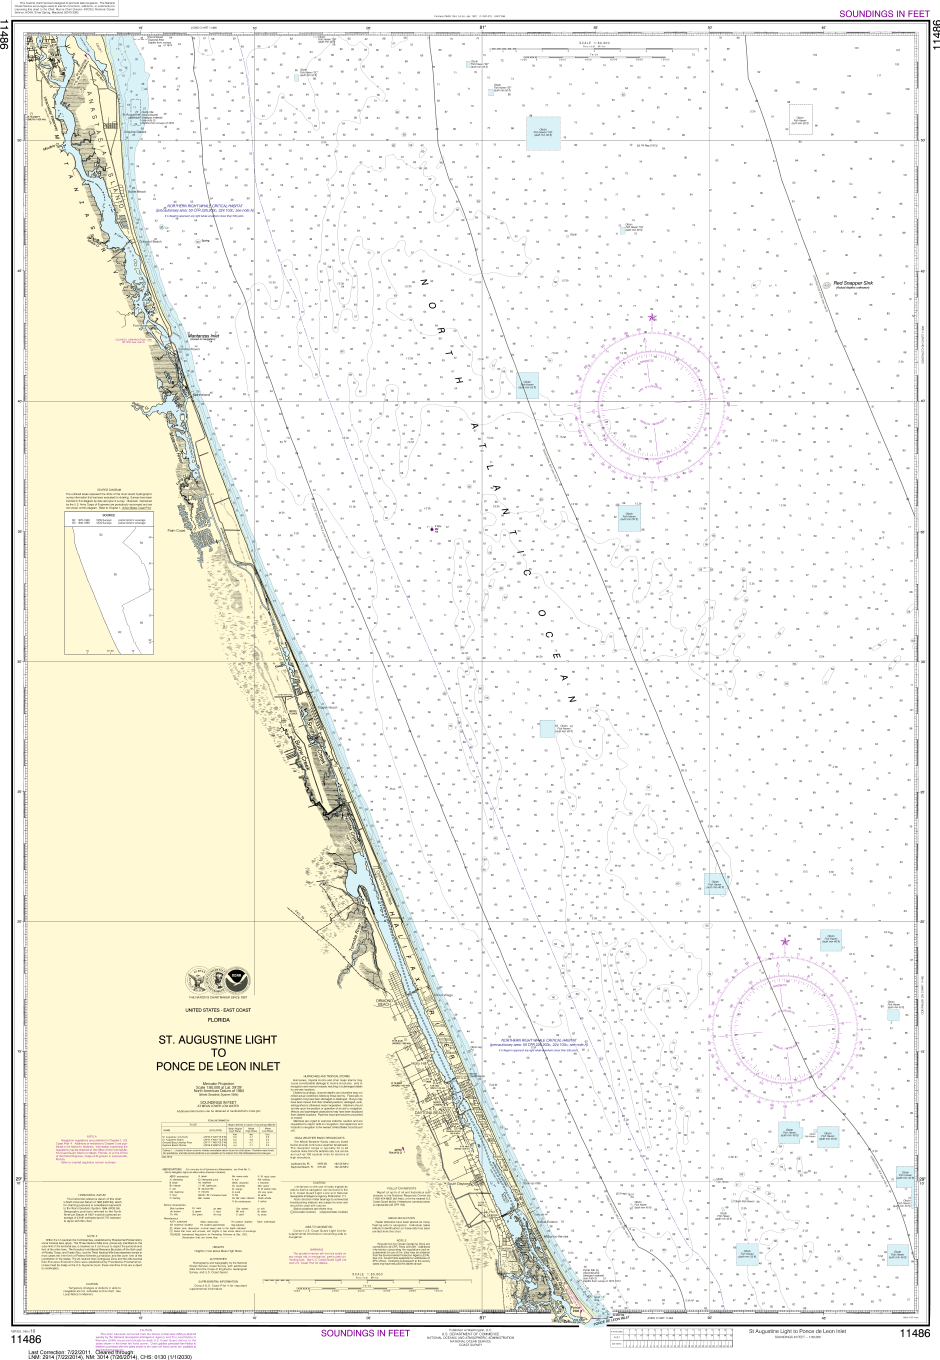 NOAA Print-on-Demand Charts US Waters-St. Augustine Light to Ponce de Leon Inlet-11486